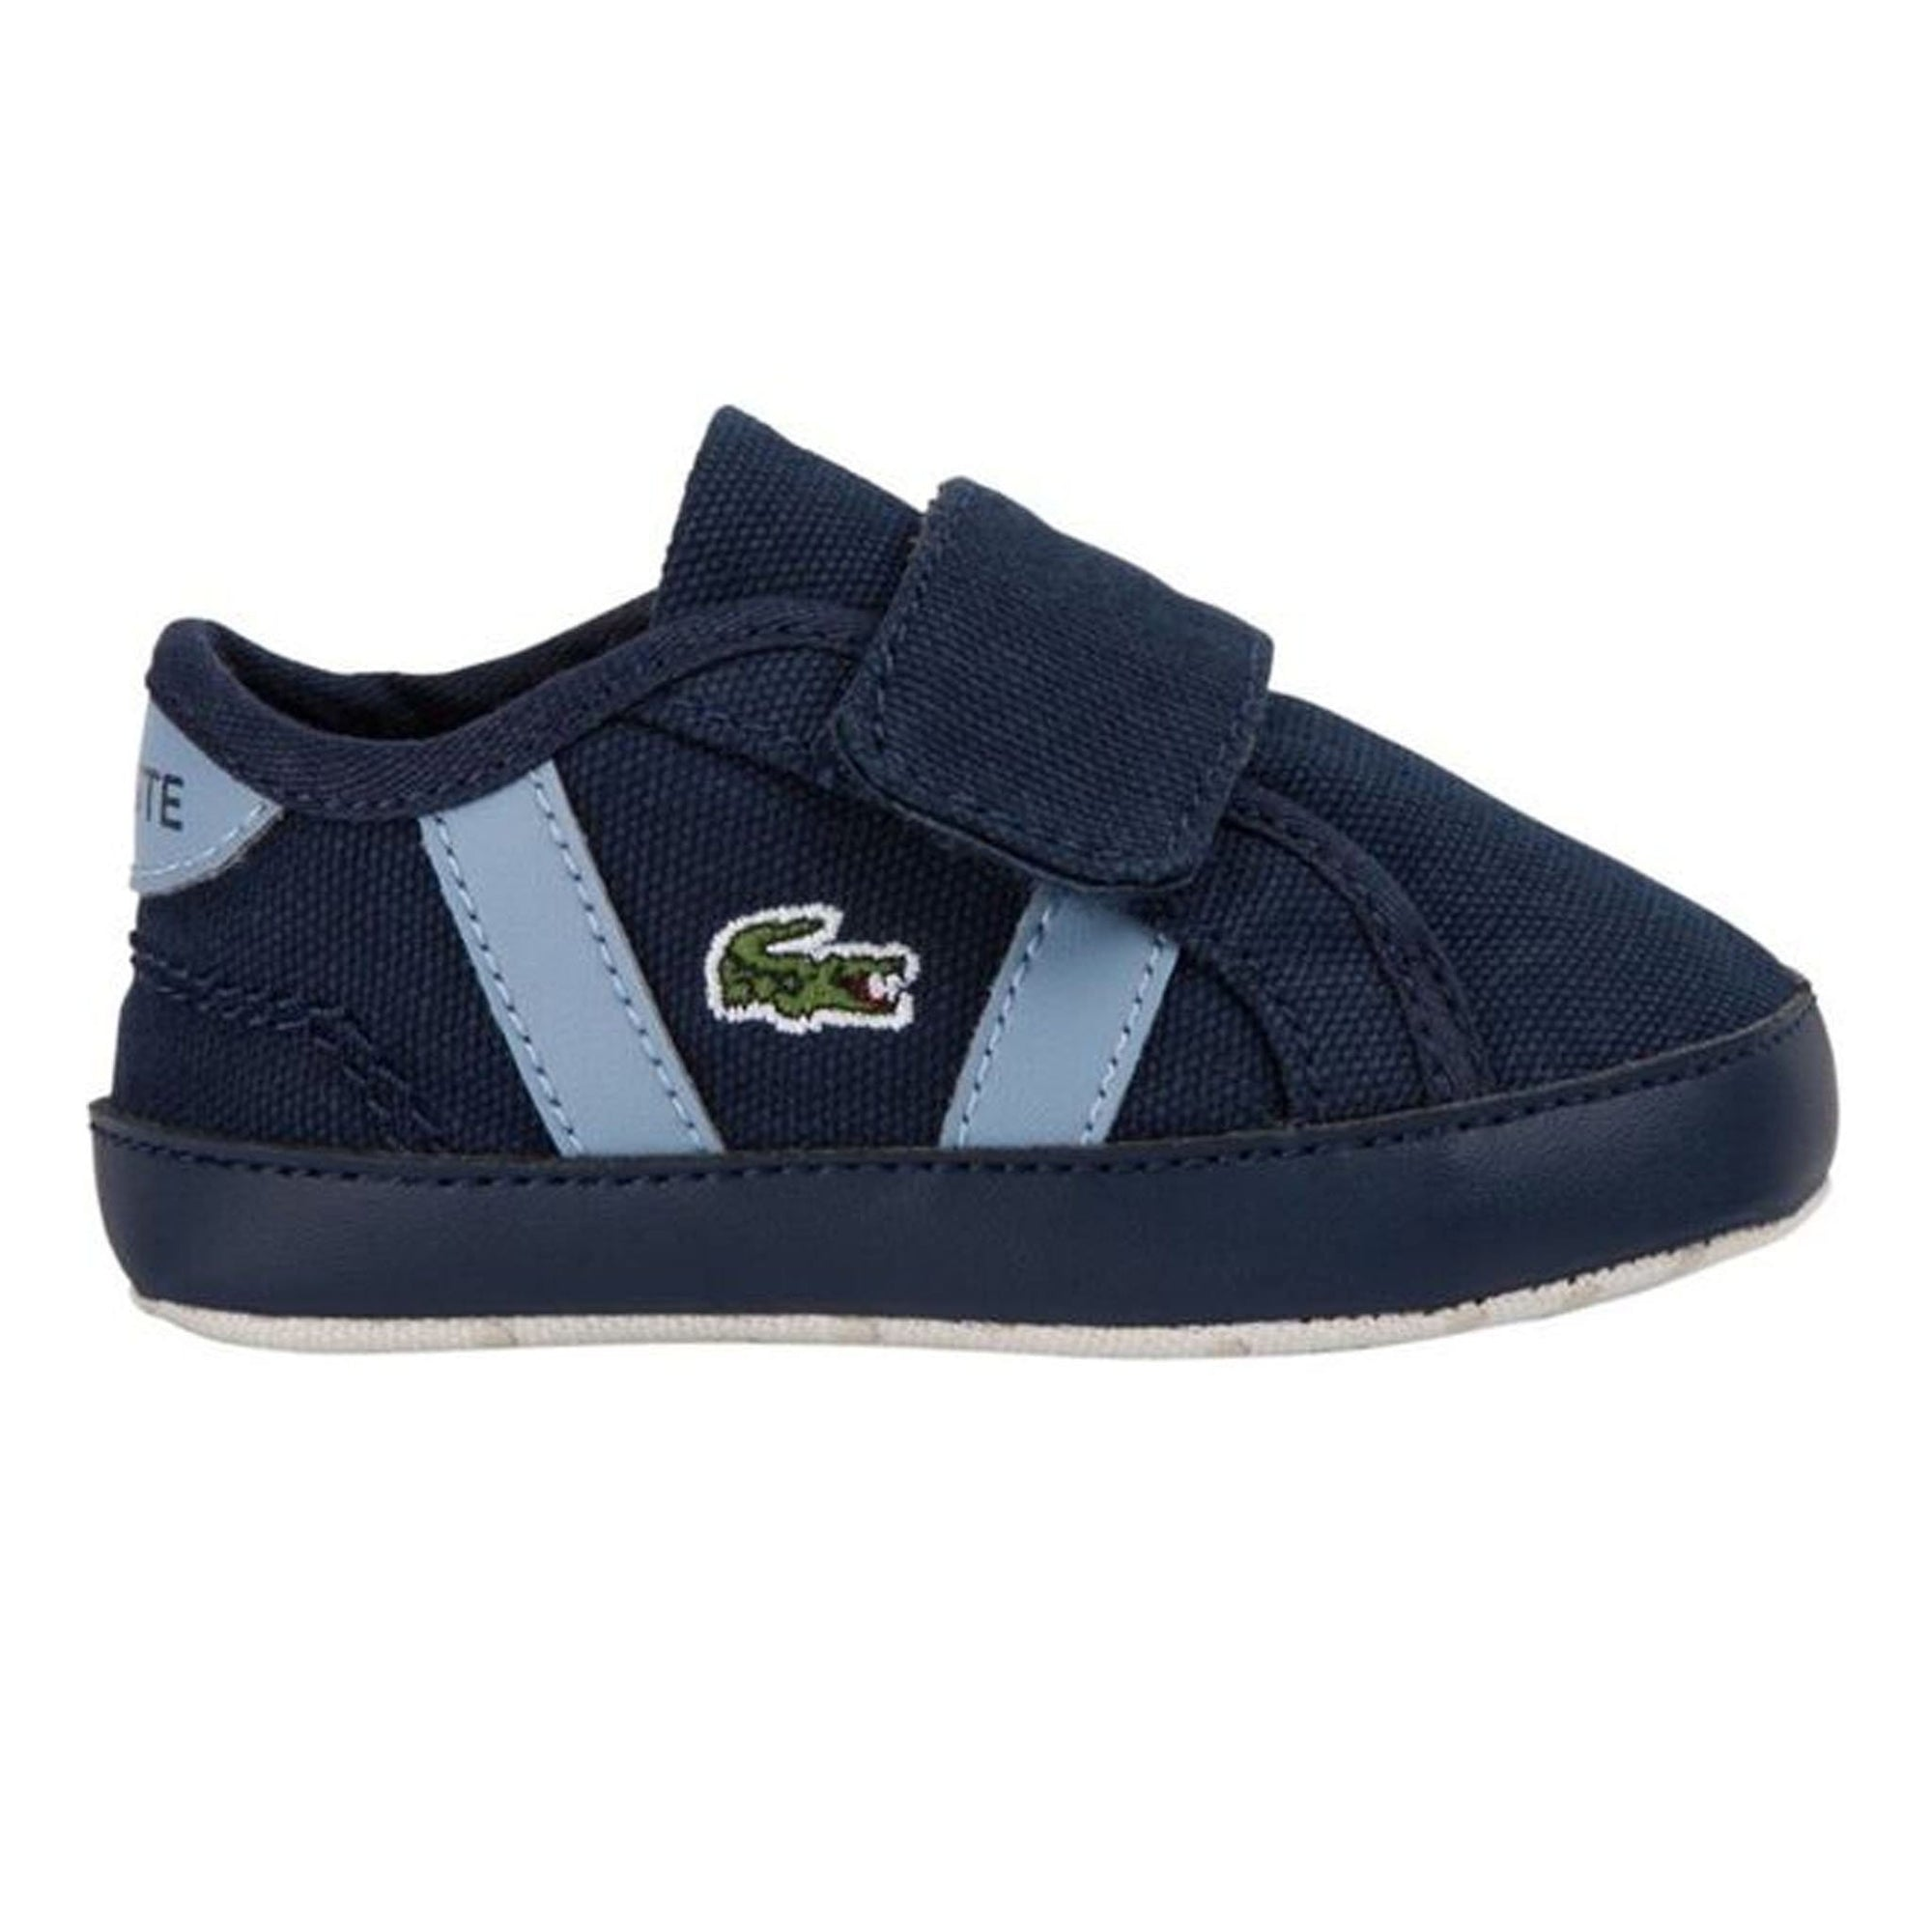 Lacsote Infants' Navy Sideline Crib Canvas Trainers